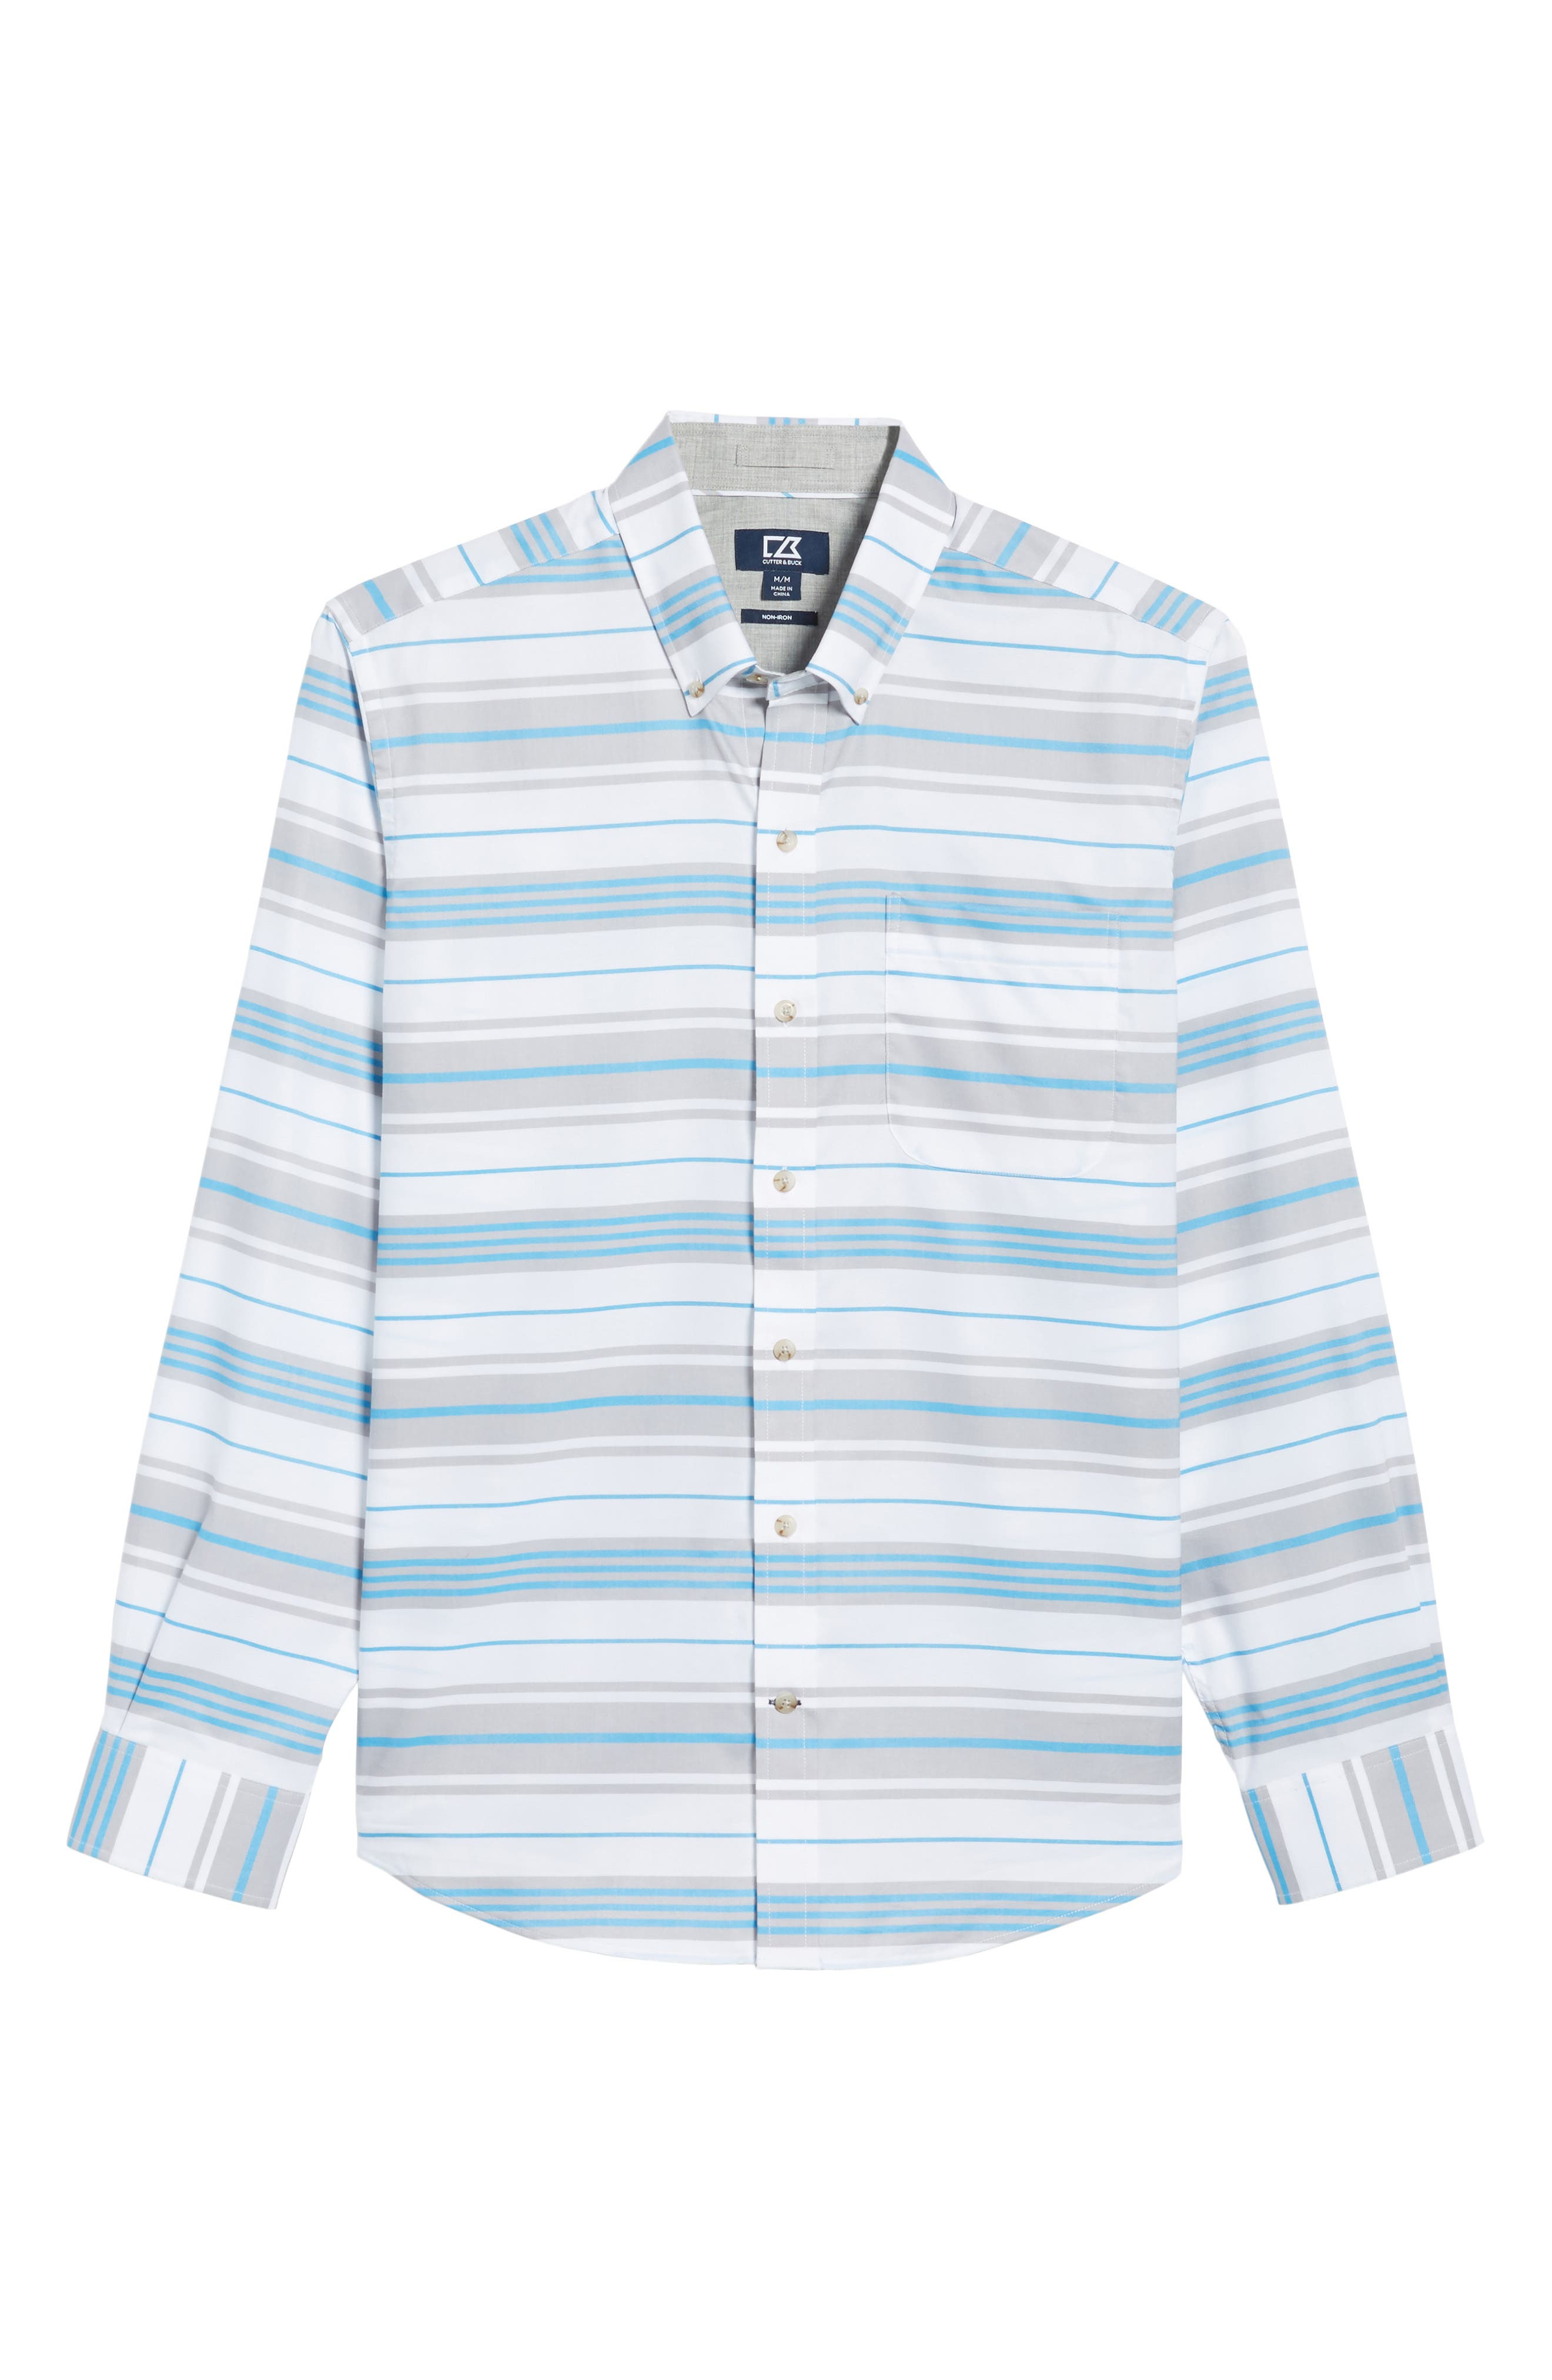 Parker Classic Fit Non-Iron Stripe Sport Shirt,                             Alternate thumbnail 6, color,                             Poolside